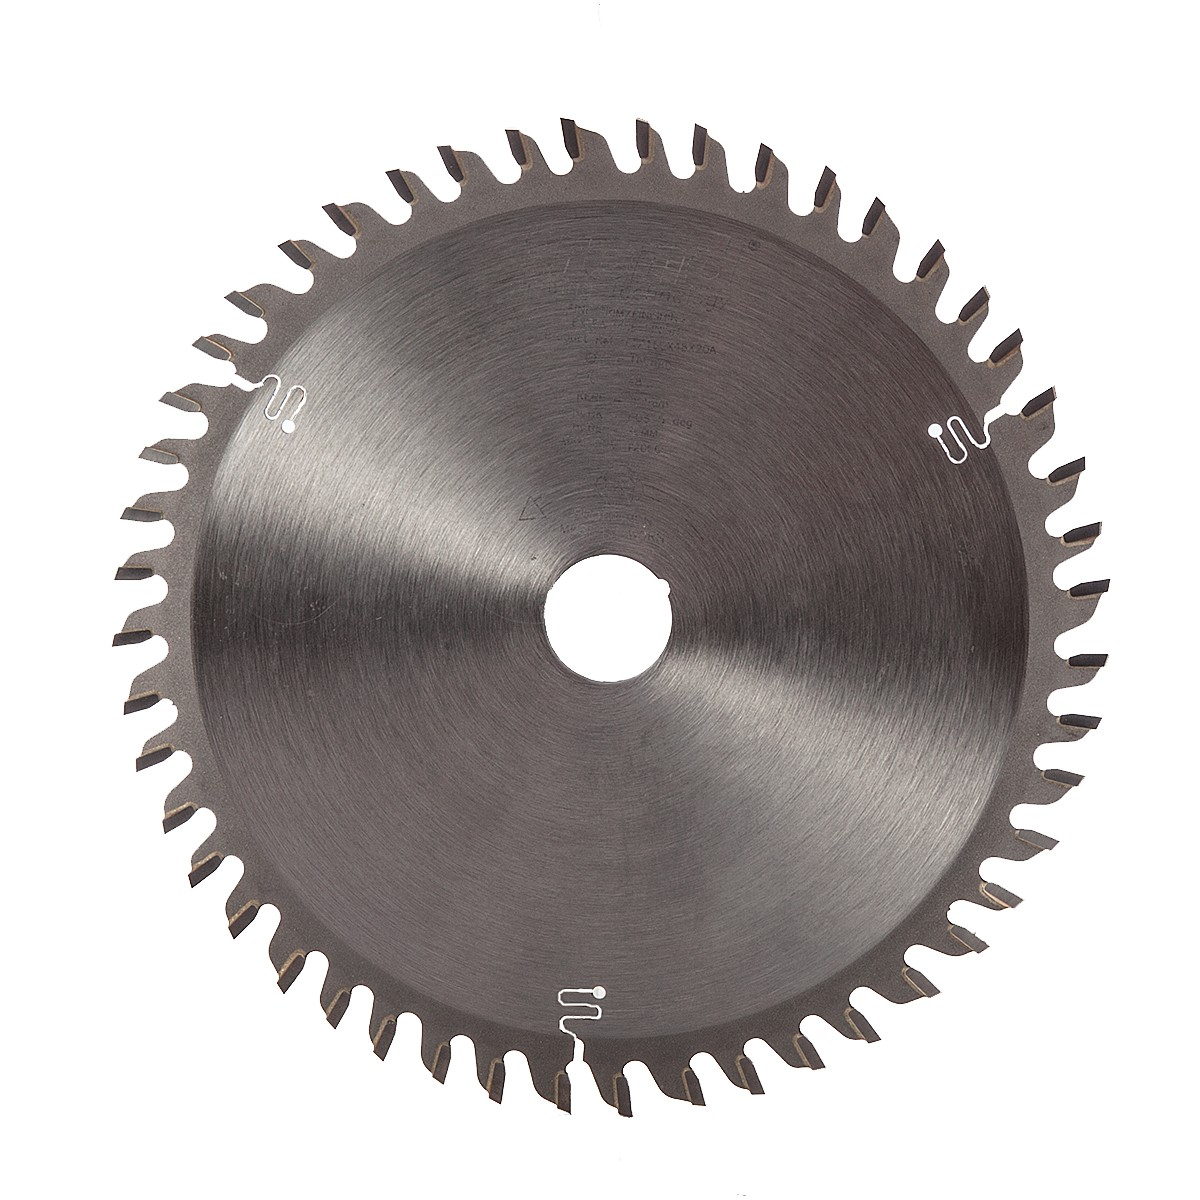 Trend FT/160X48X20A Professional Plunge Saw Blade 160mm x 48 Teeth x 20mm (Festool TS55)